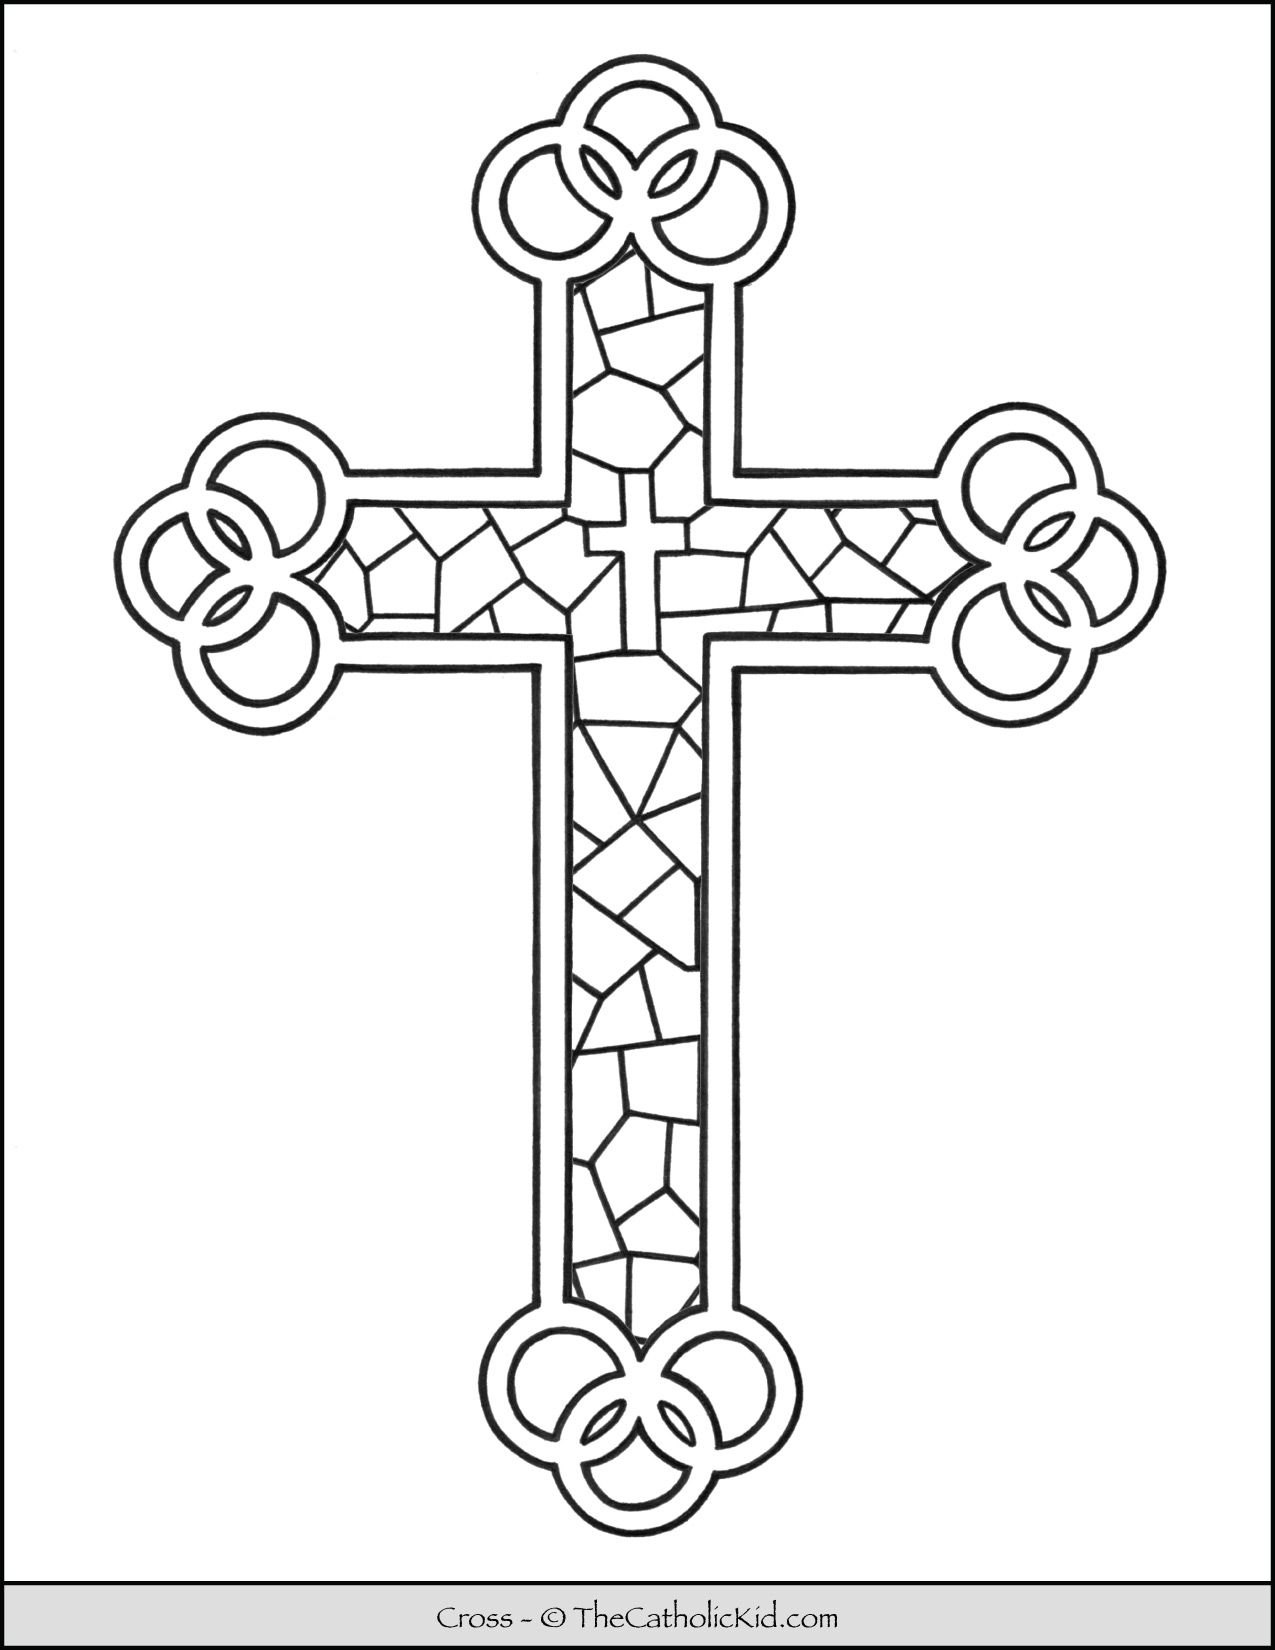 stained glass cross coloring page image result for mosaic cross patterns free cross page stained glass cross coloring